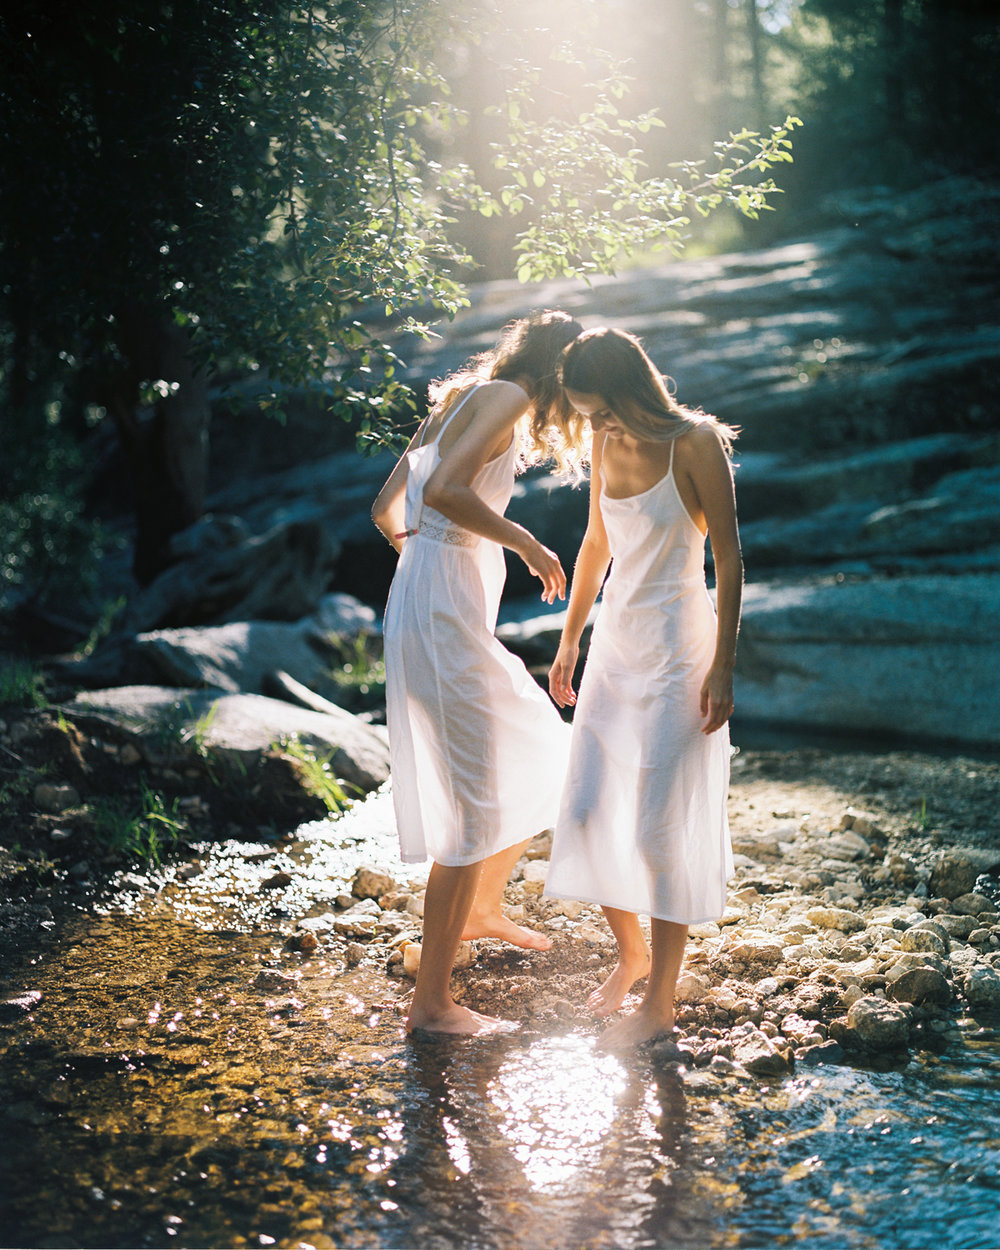 3_Kailyn_and_morgan_rose_canyon_lake_Tucson_az_pentax_67_portra_400_film_ Stream_Copyright_Taylor_Noel_Photography.jpg